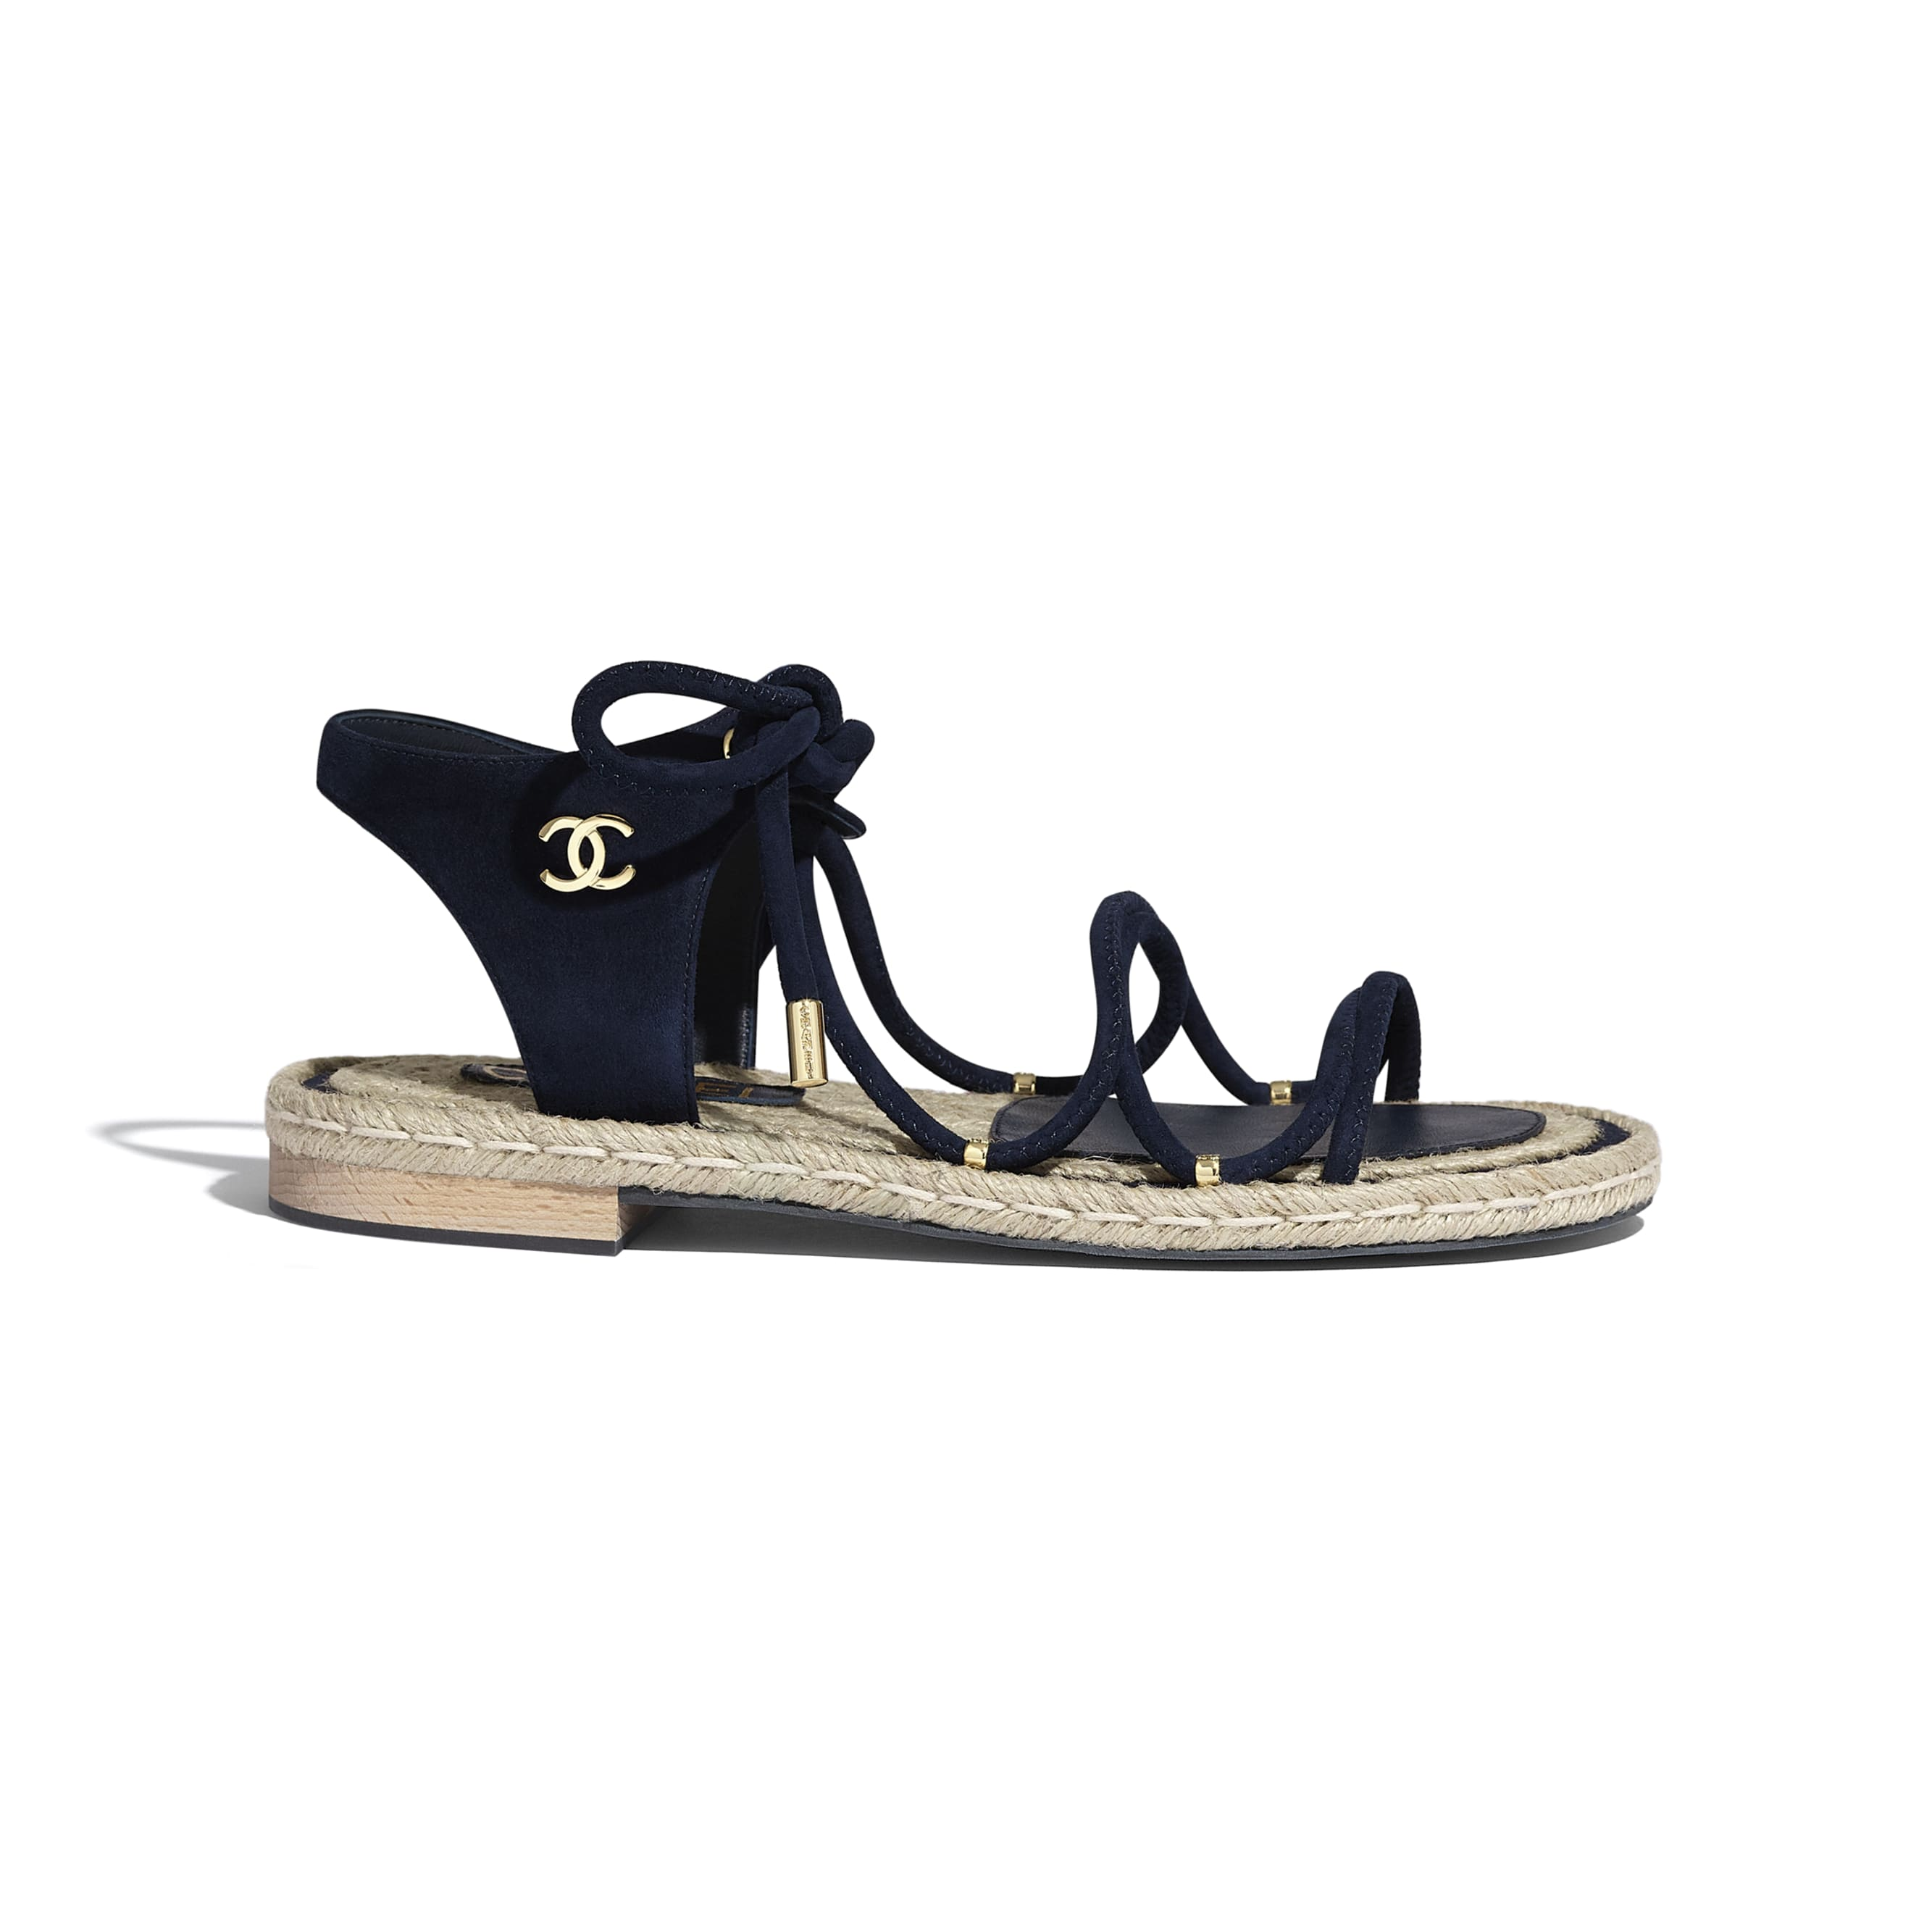 Sandals - Navy Blue - Suede Kidskin - CHANEL - Default view - see standard sized version